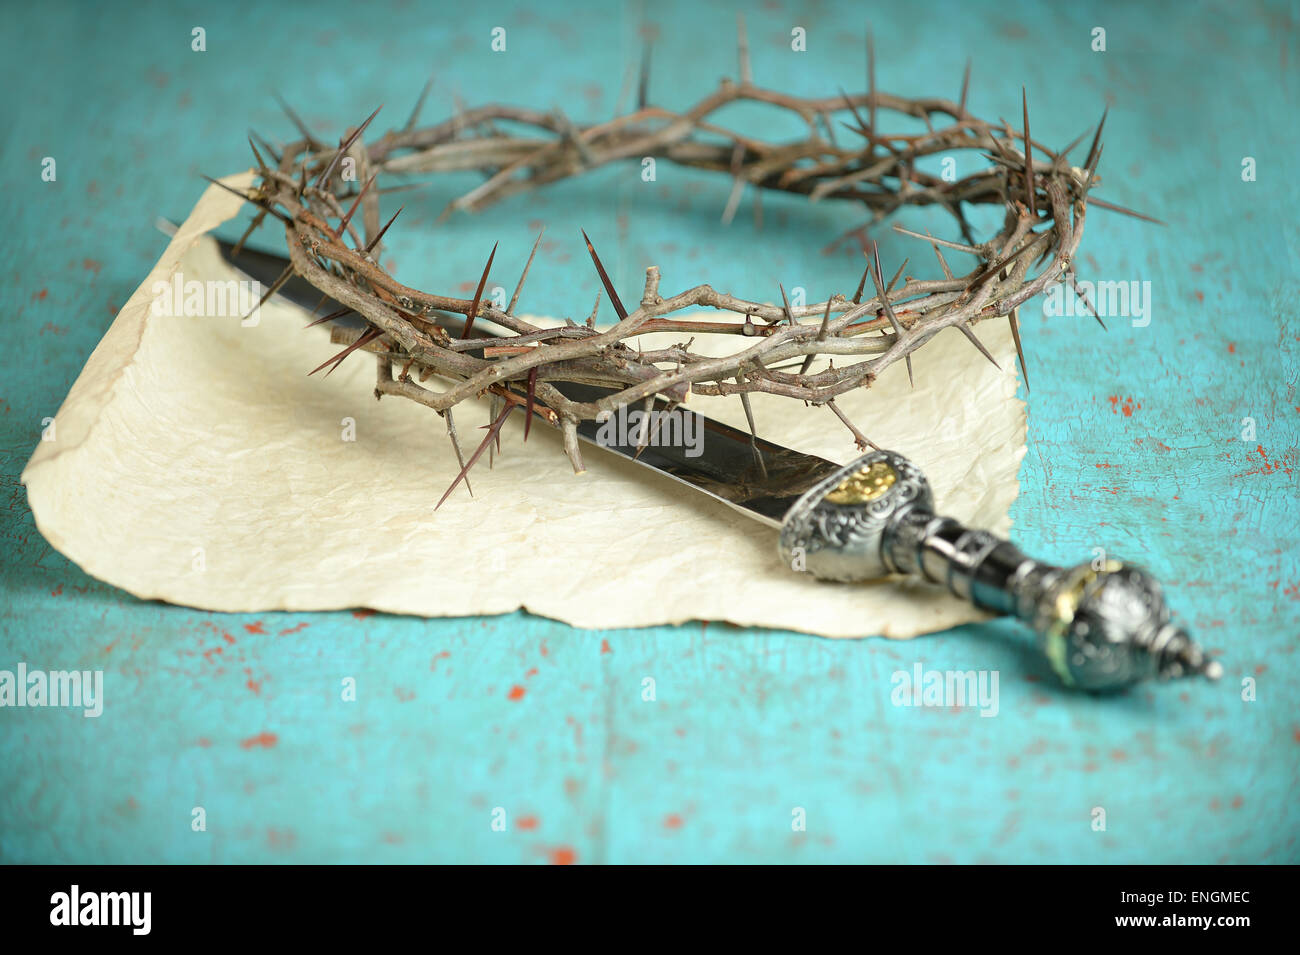 Crown of thorns and Roman sword on vintage paper -Selective focus on crown - Stock Image